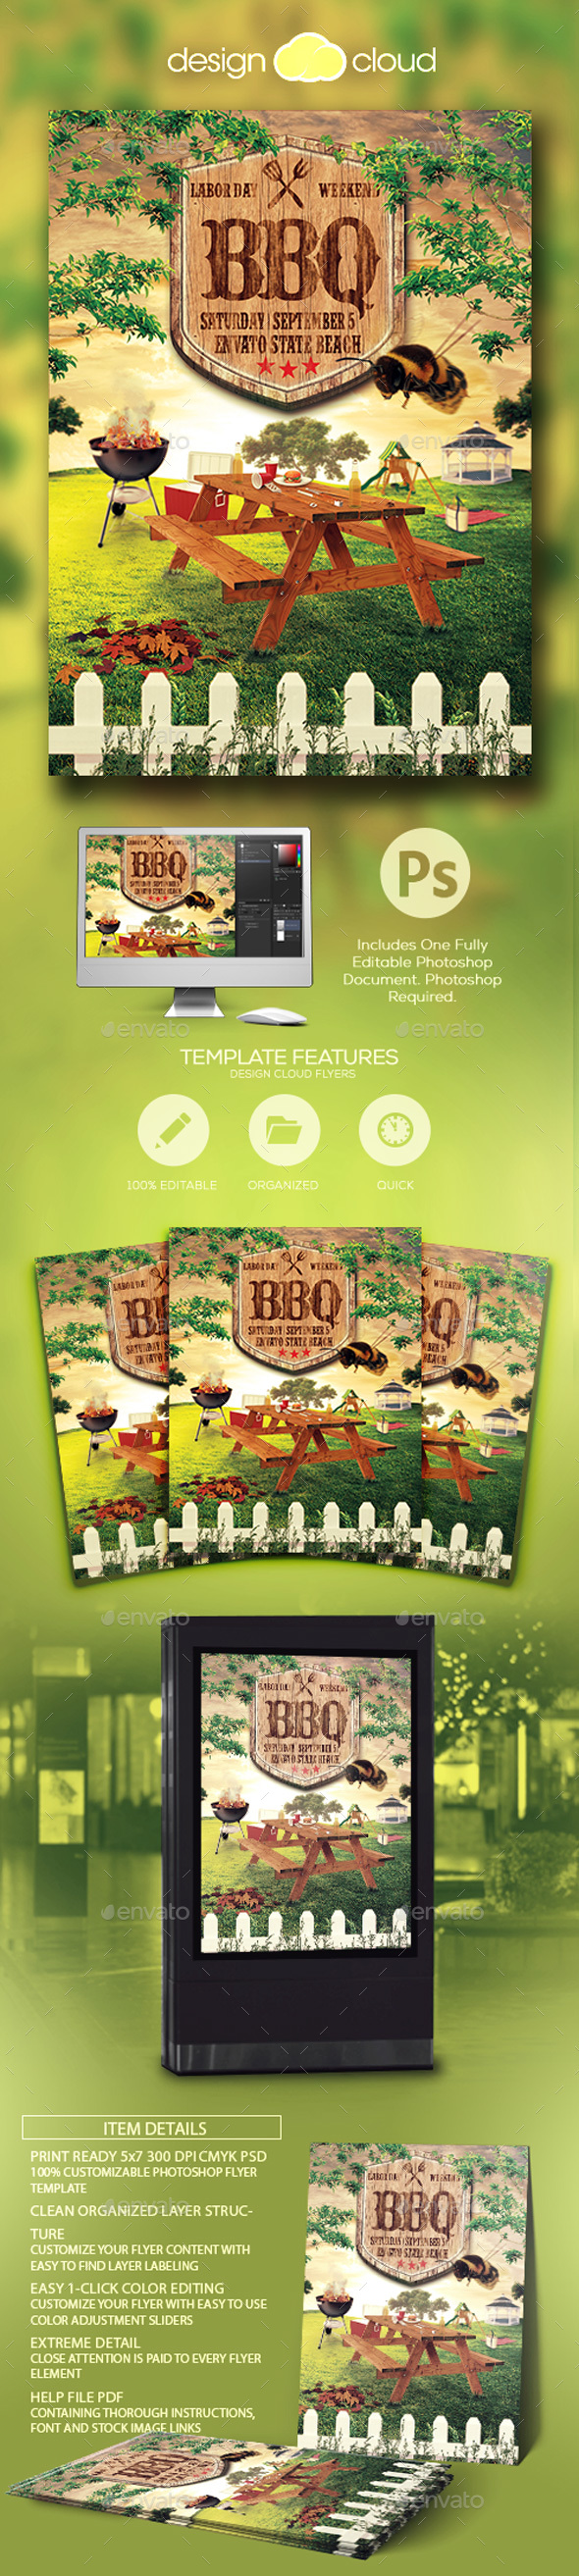 Summer Picnic BBQ Template - Events Flyers